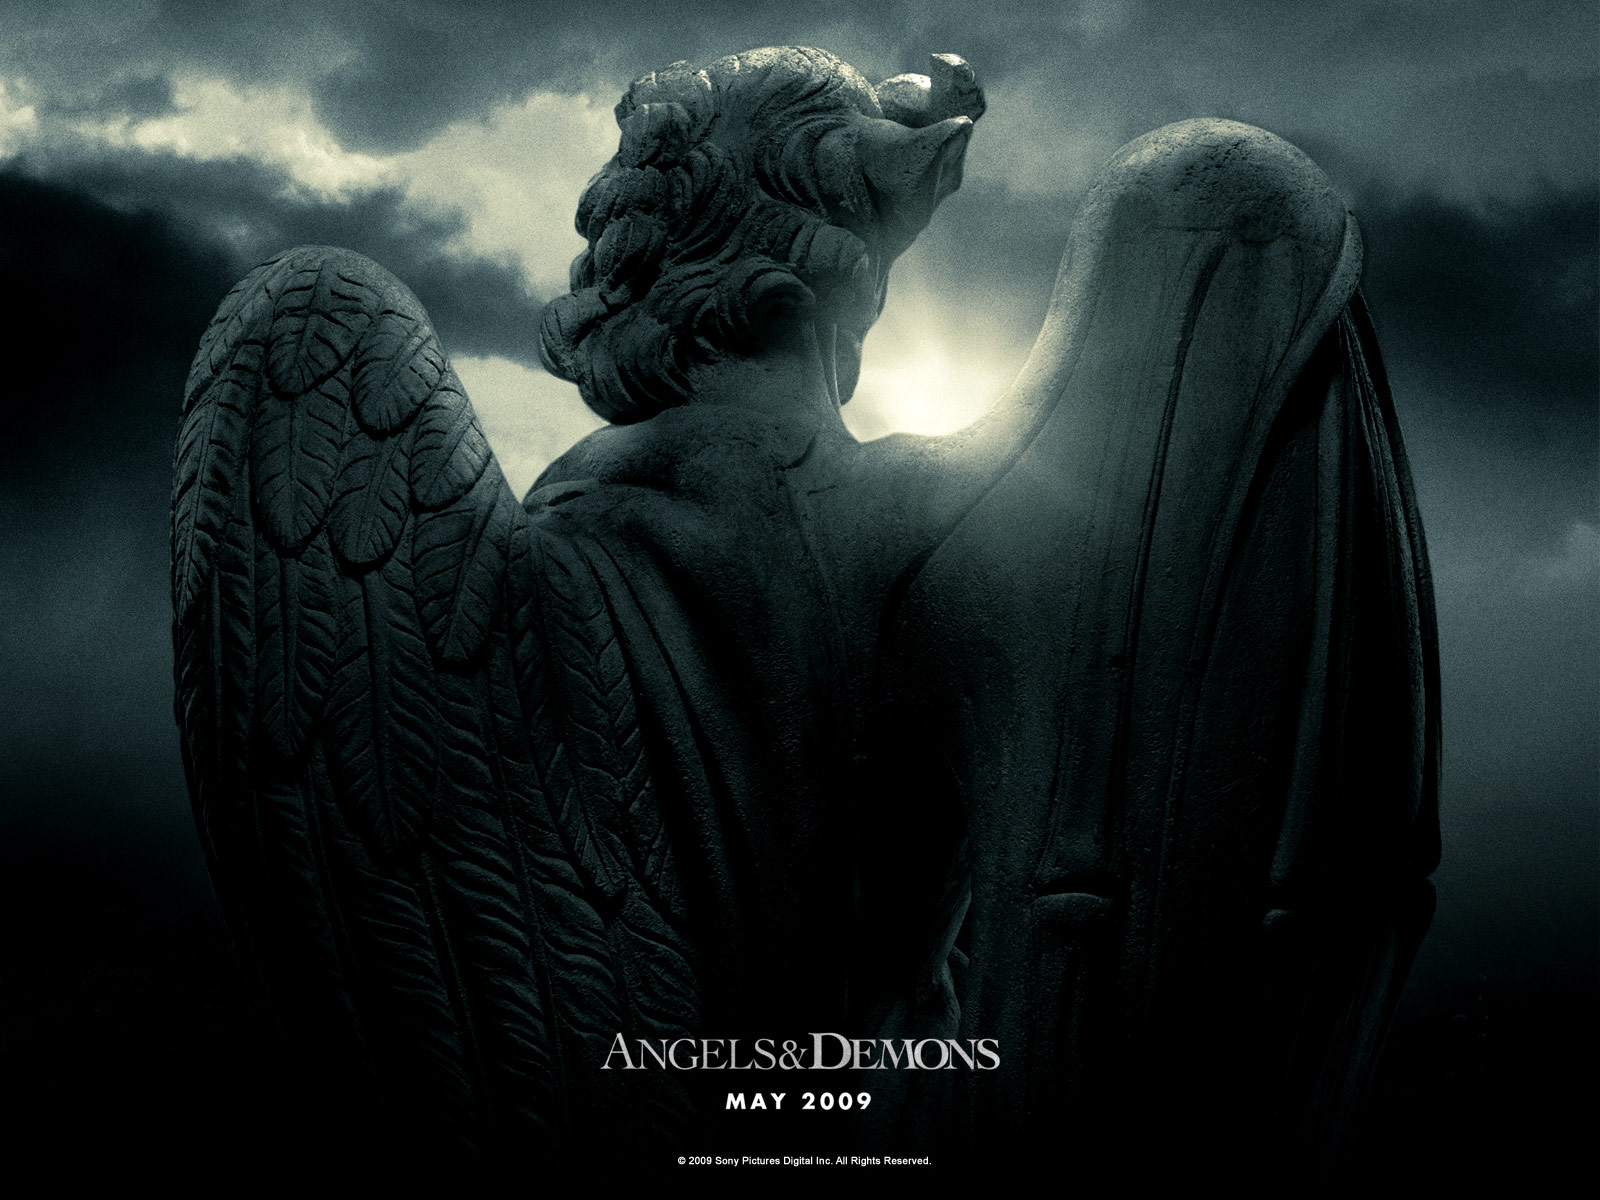 Free Download Ngeles Y Demonios Angels Demons 1600x1200 For Your